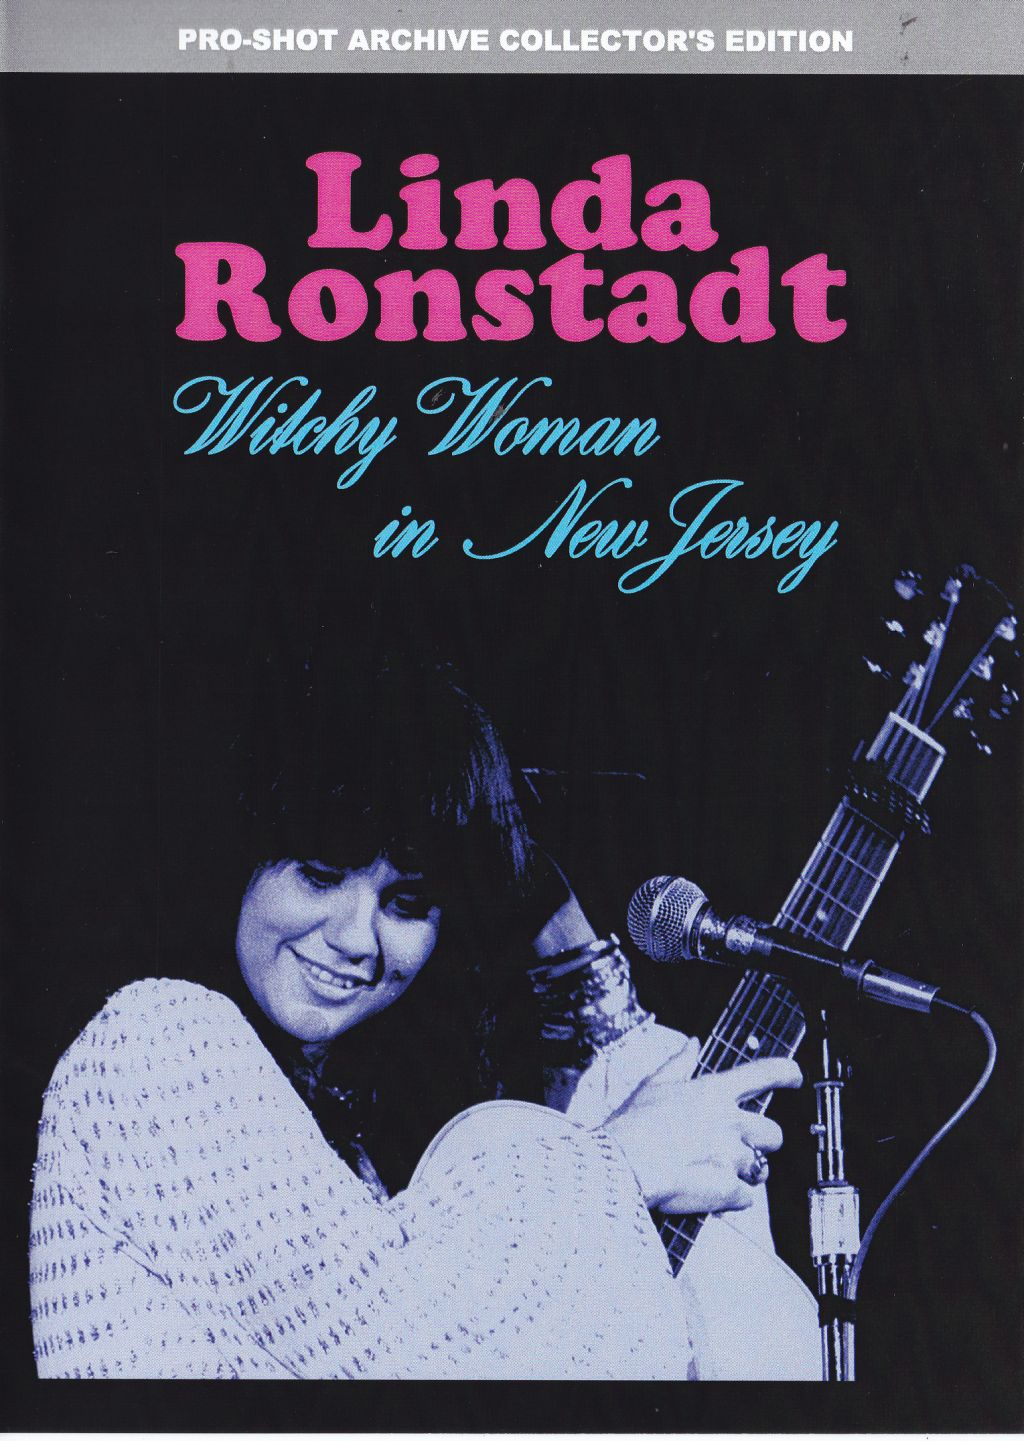 Linda Ronstadt Witchy Woman In New Jersey 1dvdr